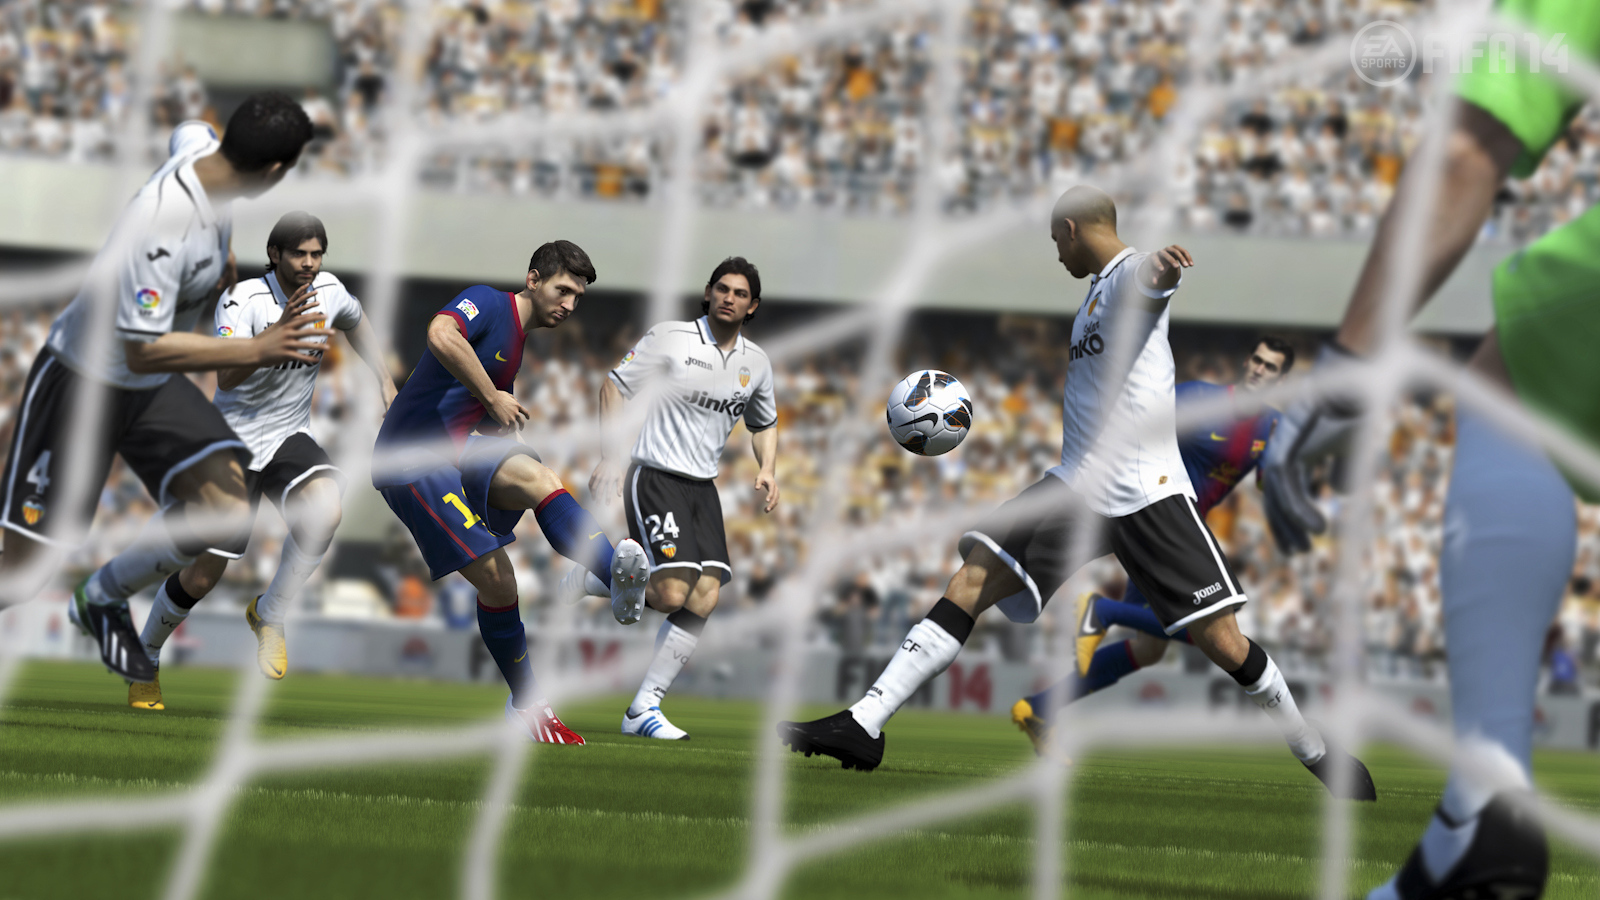 FIFA 14 for PS4 image